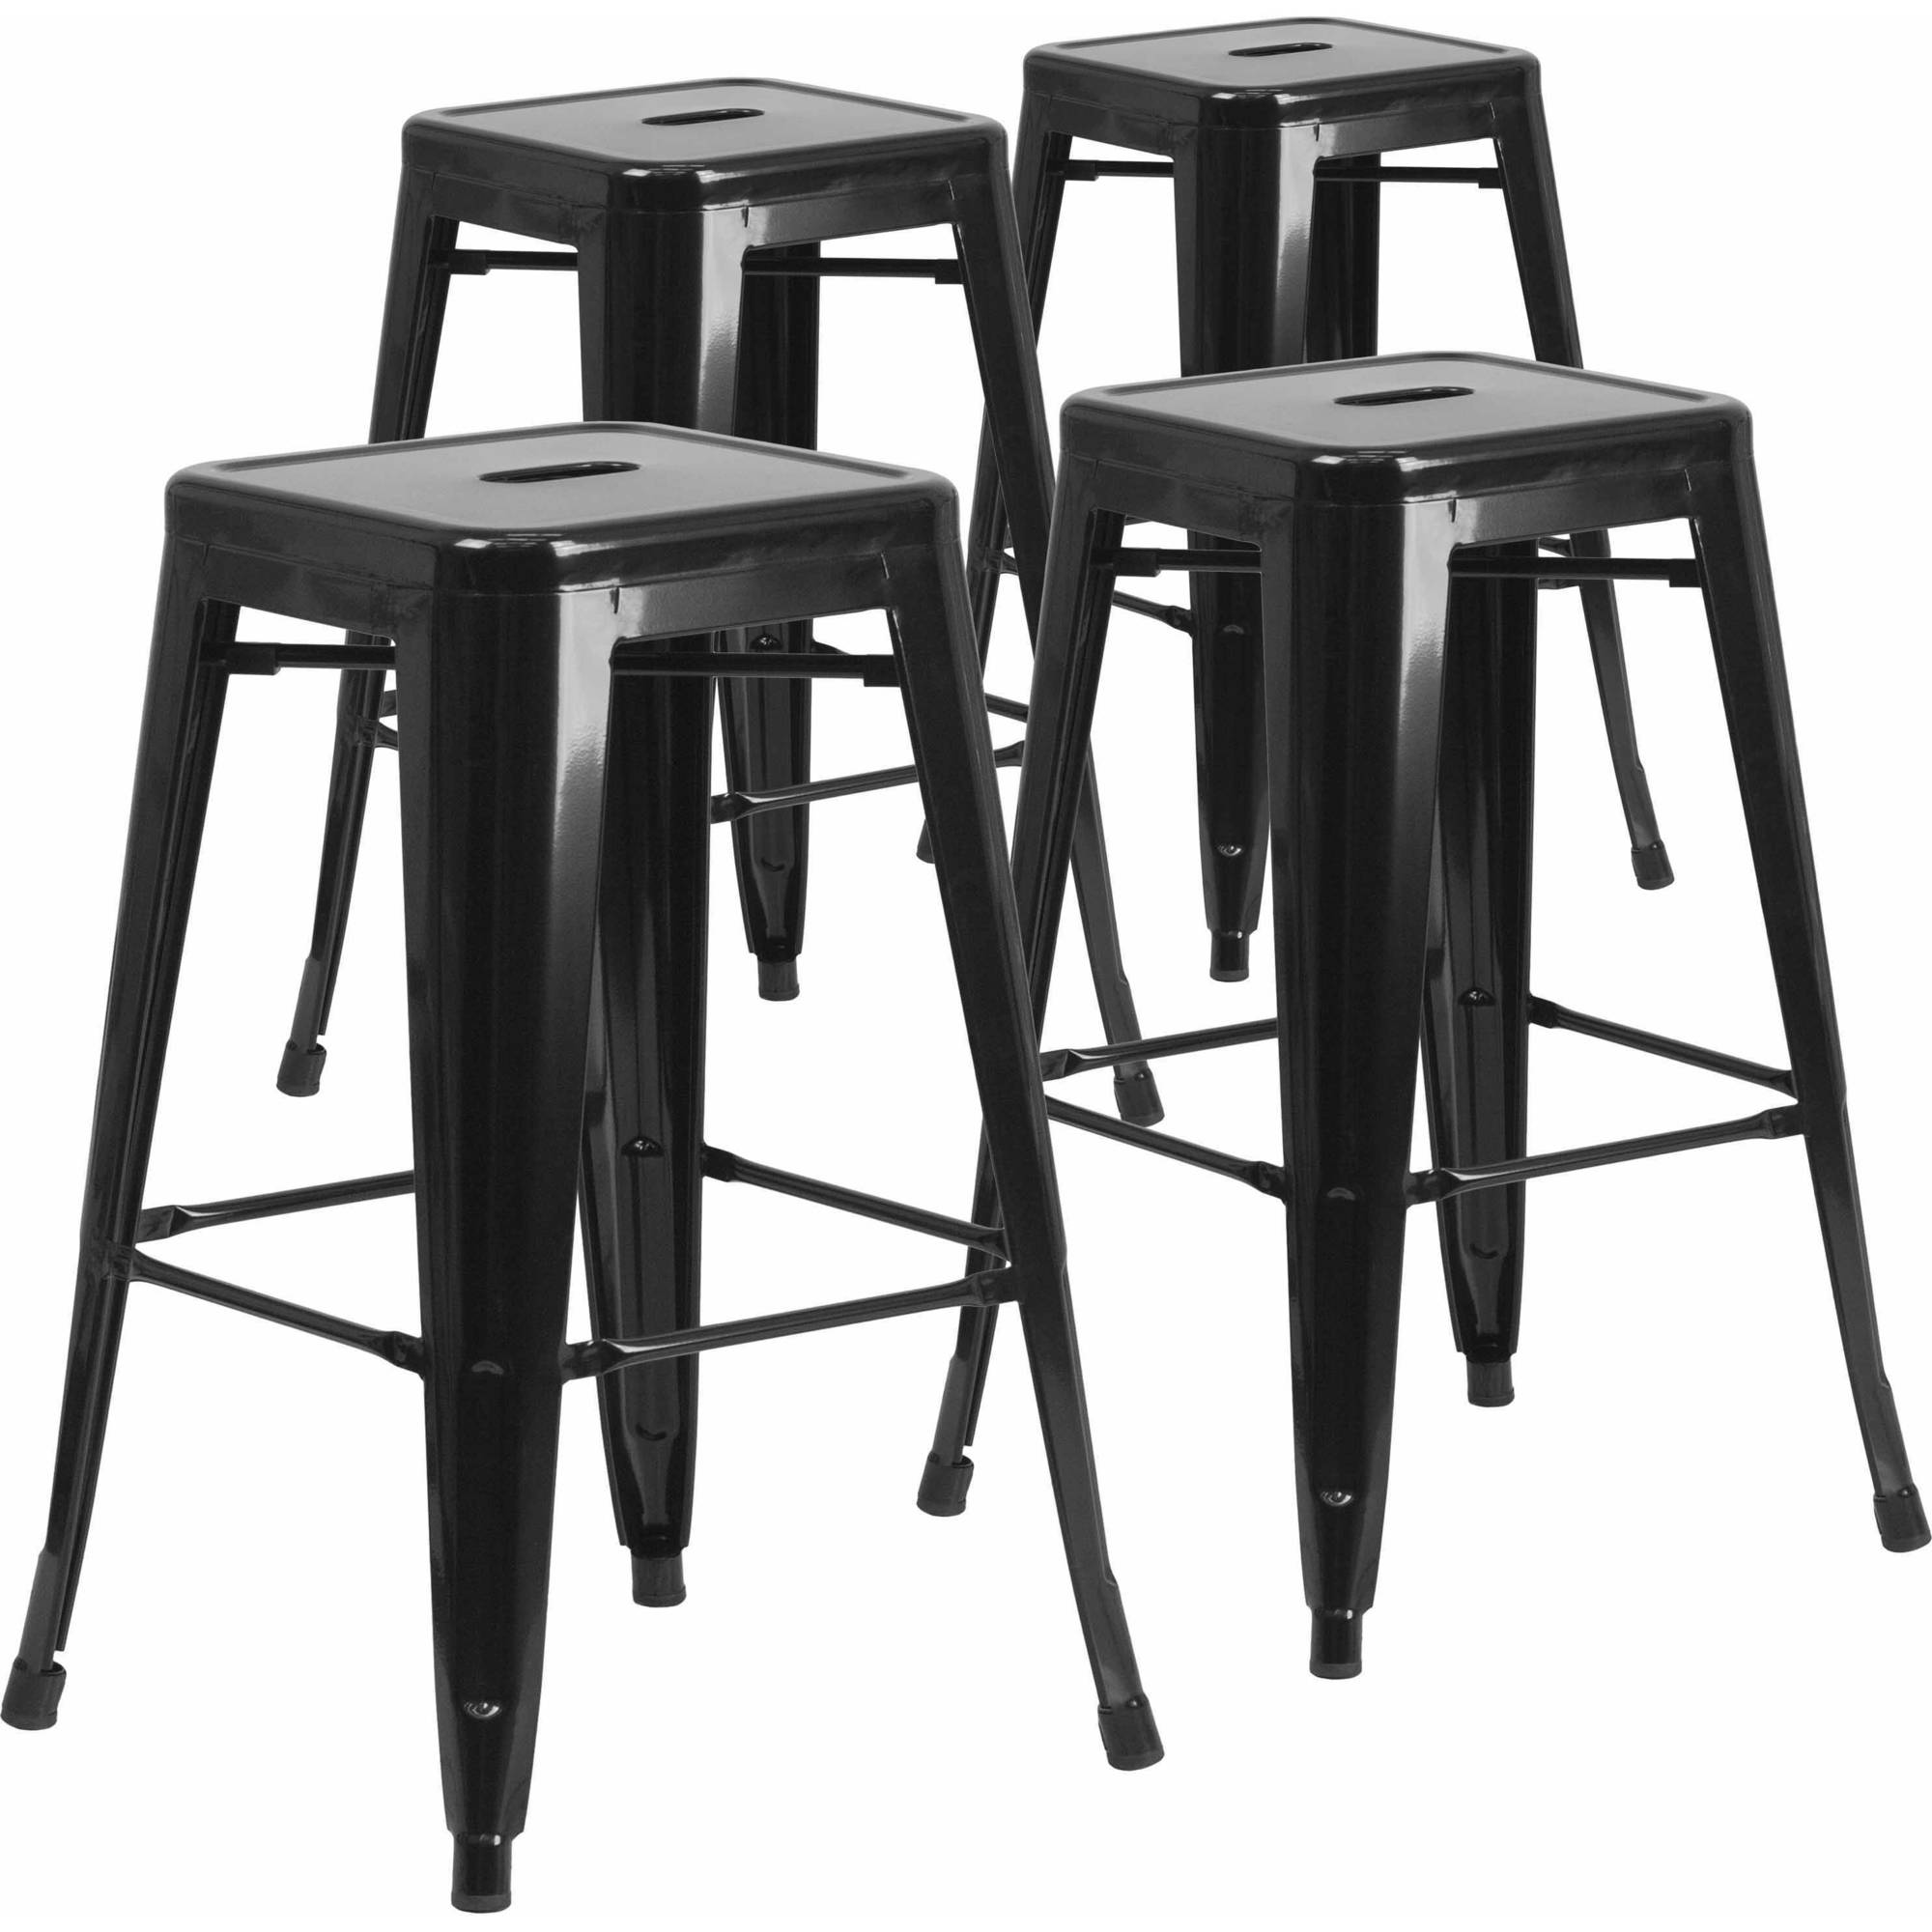 Better Homes Gardens Adjustable Barstool Oil Rubbed Bronze